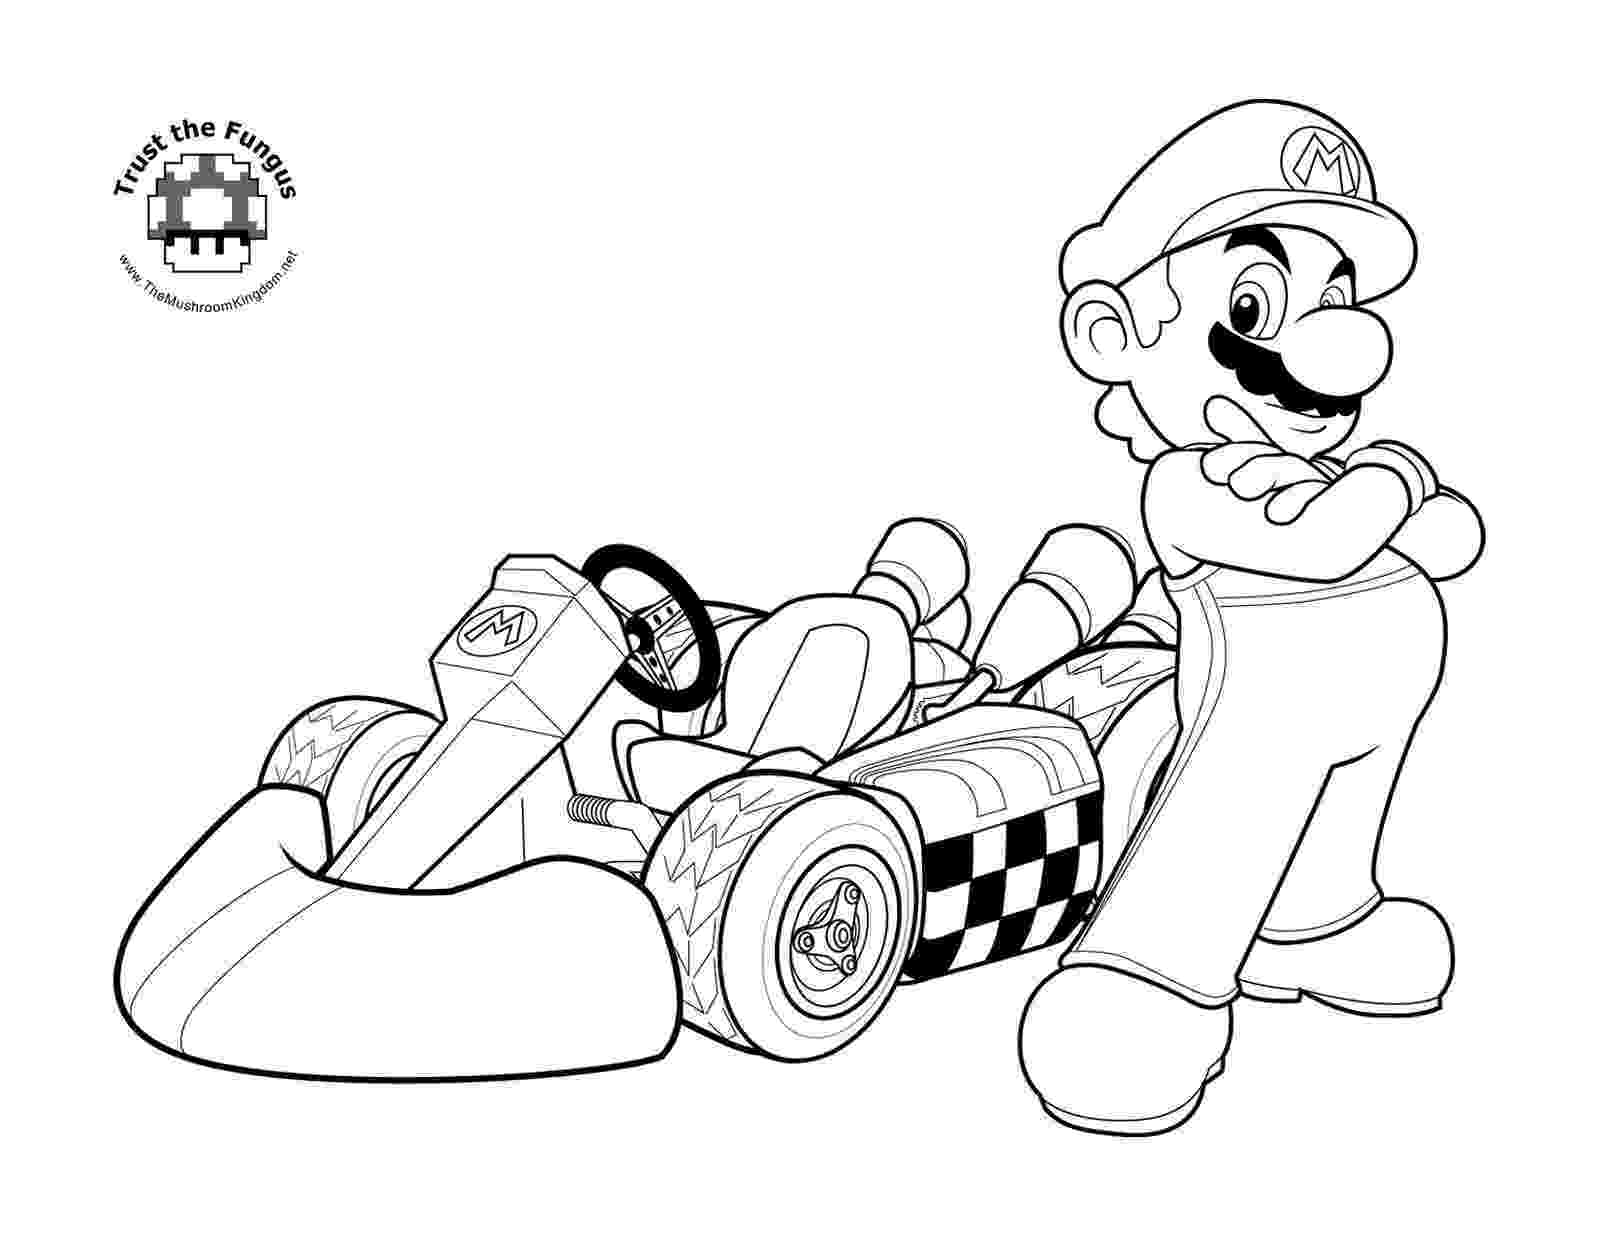 print mario mario kart coloring pages best coloring pages for kids mario print